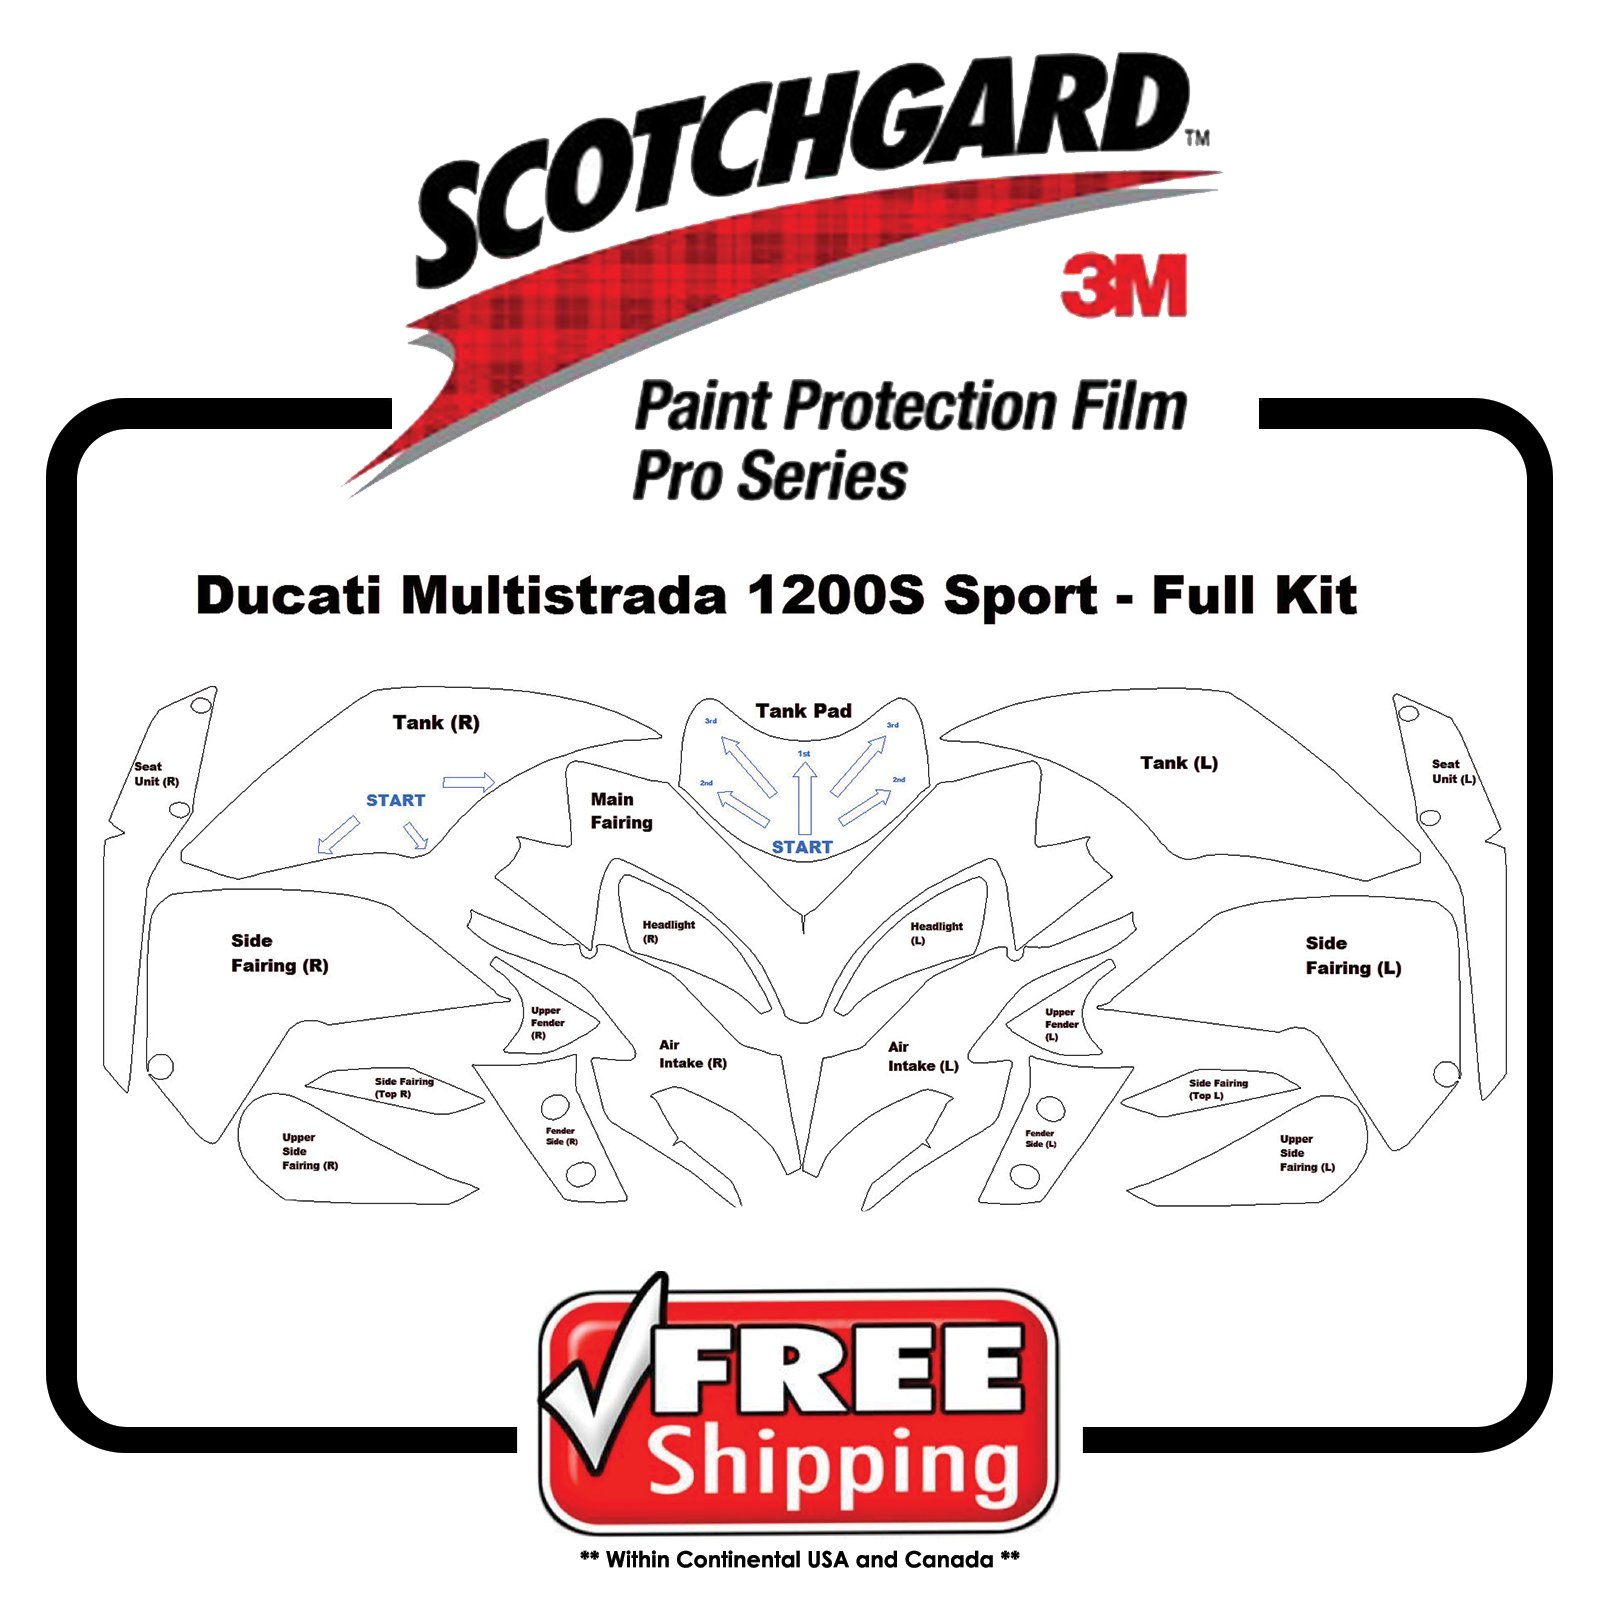 Kits for Ducati Multisrada 1200s Sport - 3M 948 PRO SERIES- Paint Protection